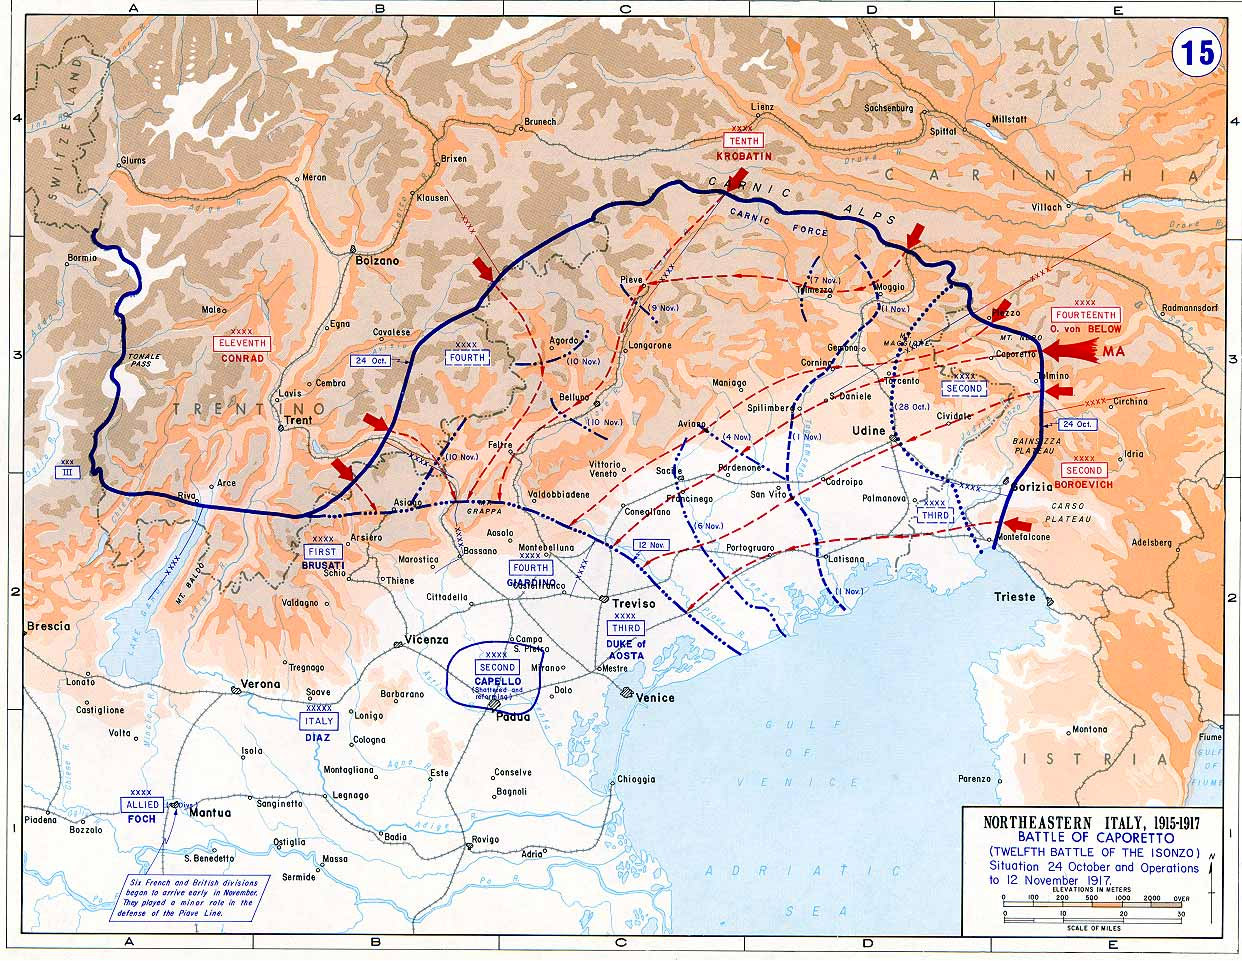 Map showing the northern extent of the Italian frontline before and after the Battle of Caporetto.